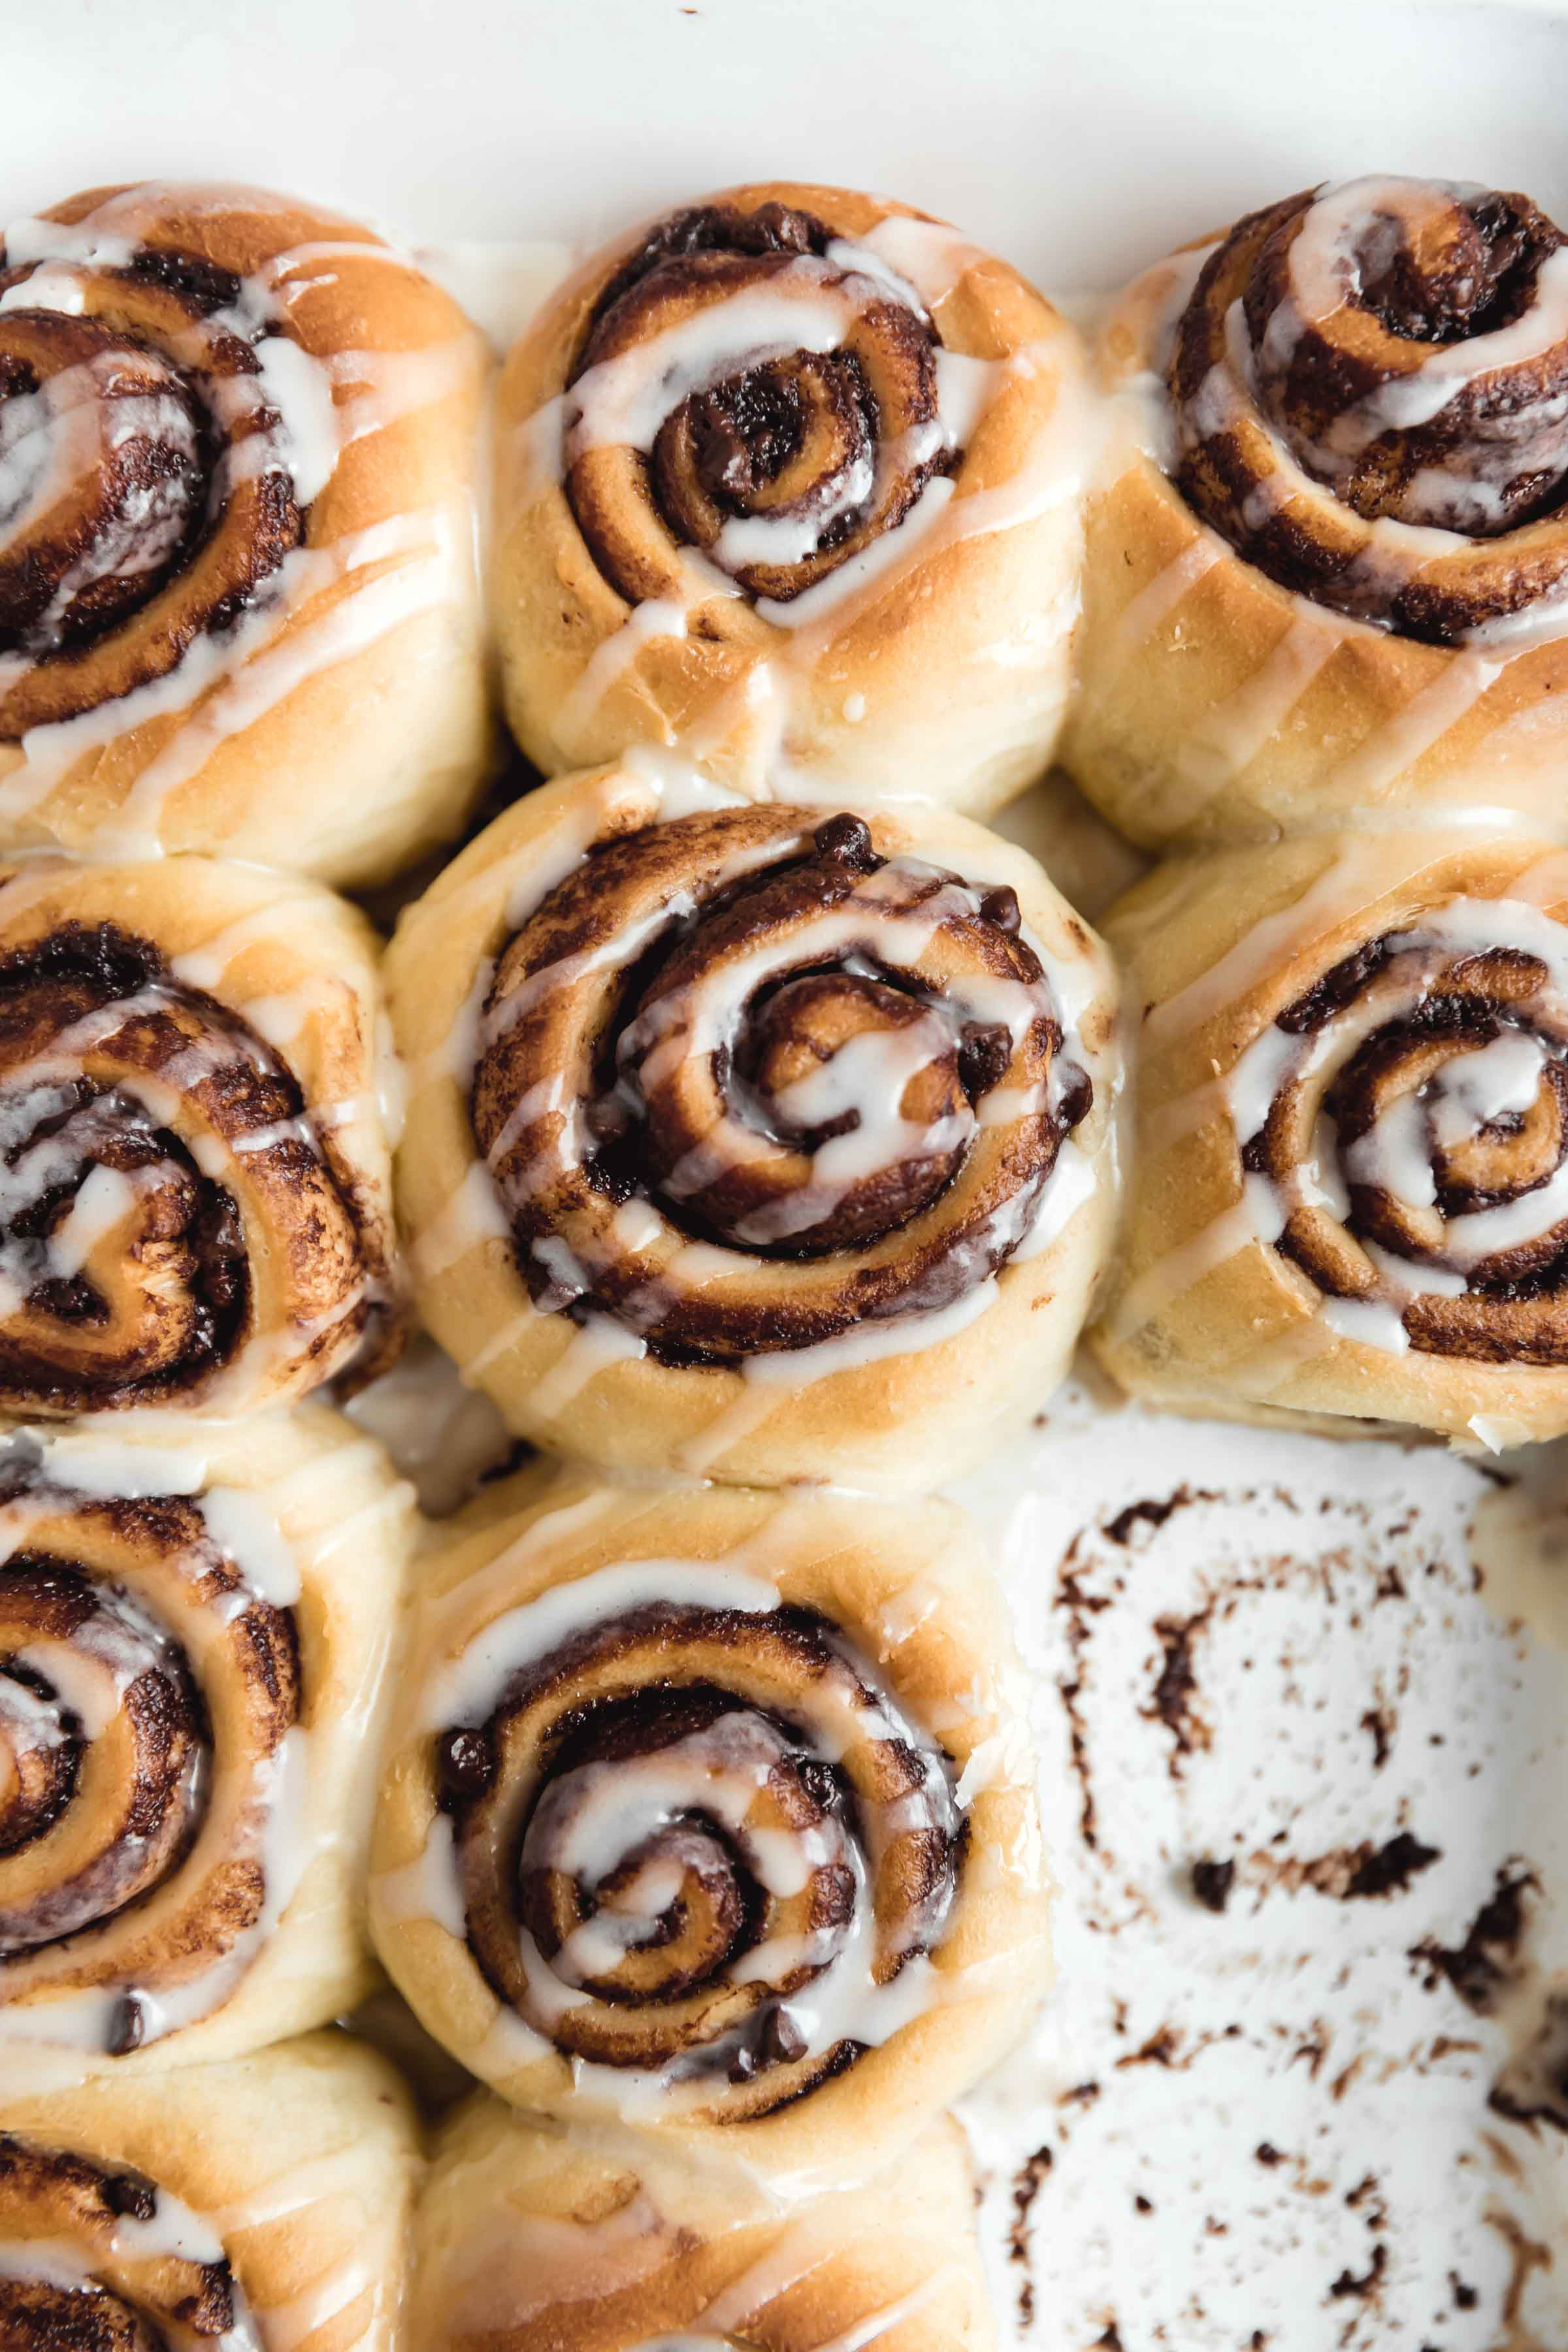 Nothing says holiday baking more than cinnamon rolls...except maybe CHOCOLATE cinnamon rolls. These pillow soft cinnamon rolls are filled with chocolate, drizzled wit the most perfect cream cheese icing and absolutely scrumptious. Best part? They're ready in under an hour. #cinnamonrolls #bromabakery #foodphotography #easy